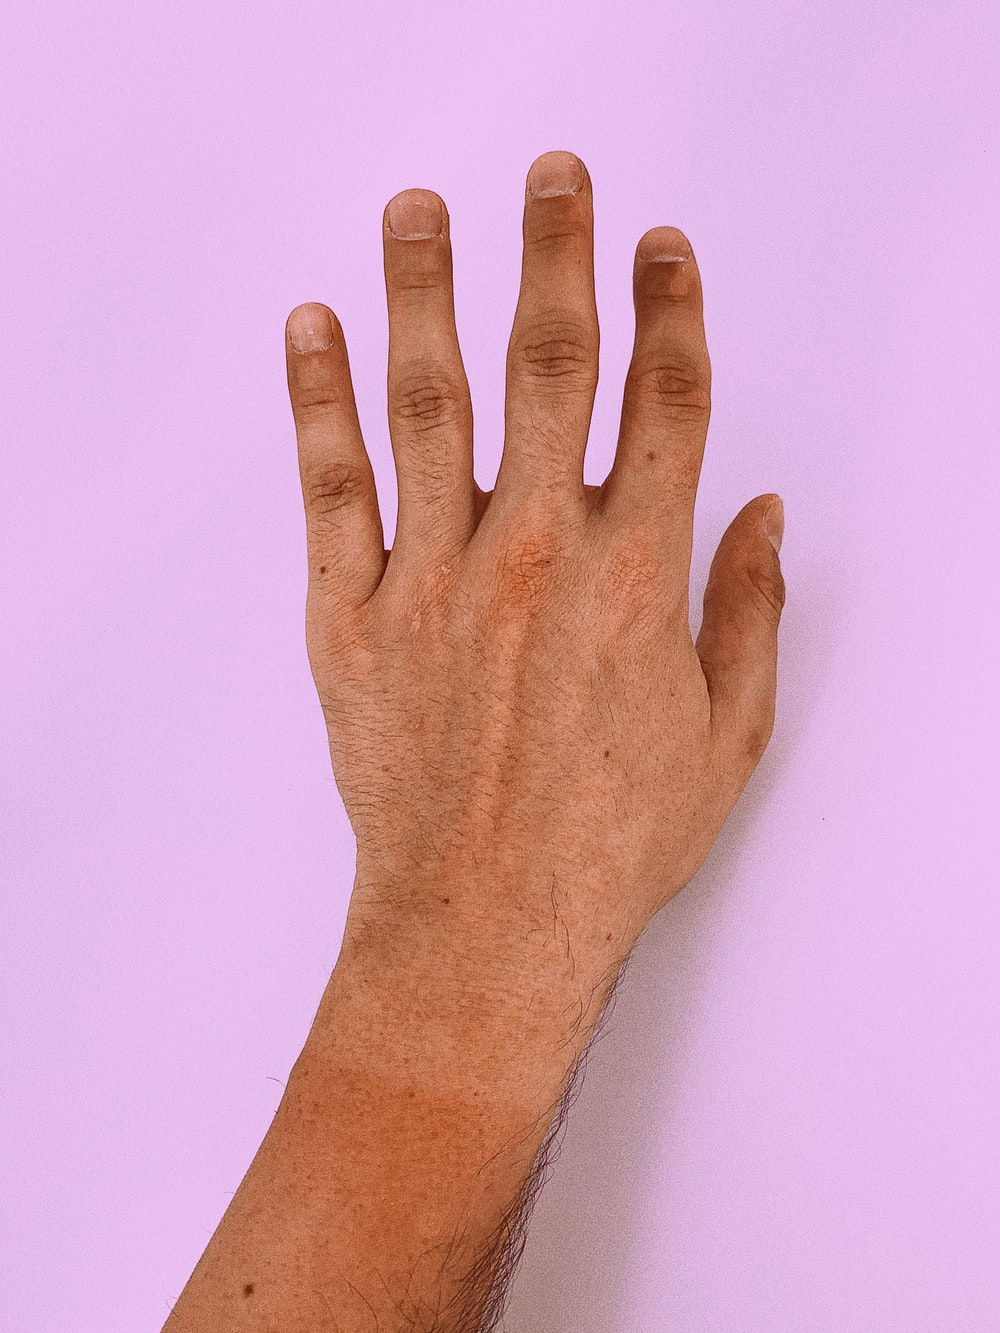 persons left hand on white surface